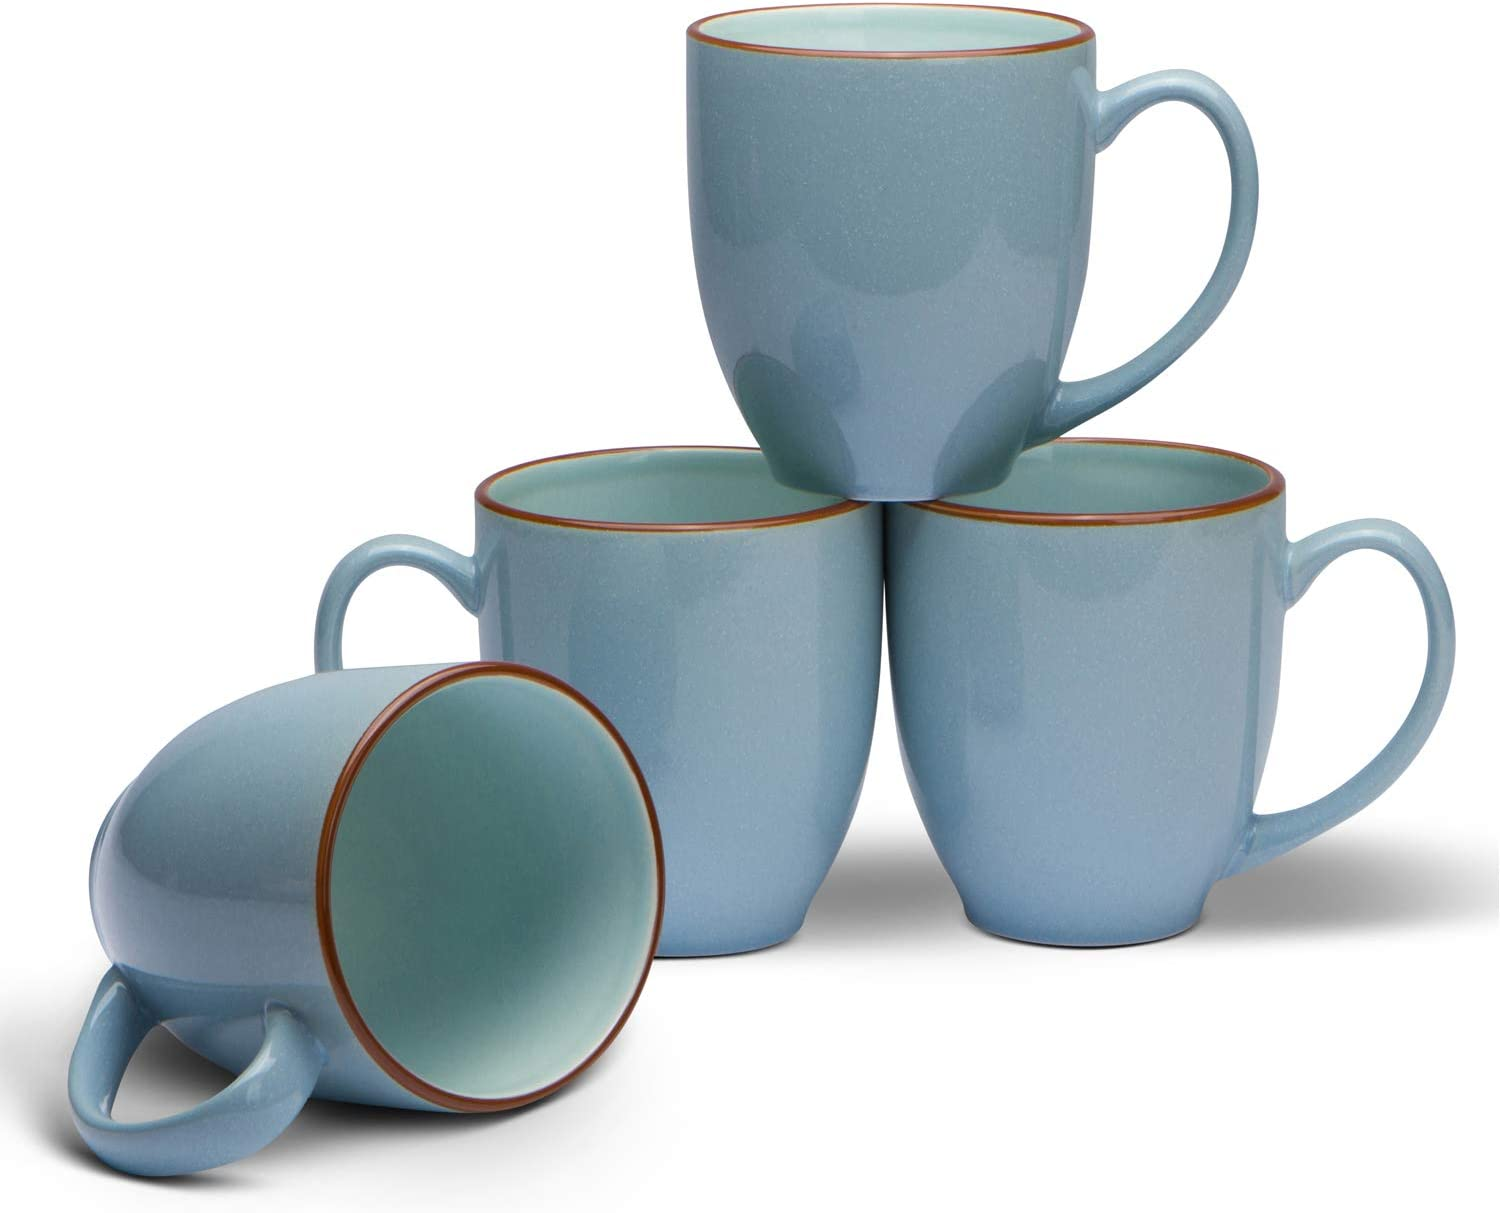 Serami 14oz Bistro Cool Blue Mugs for Coffee or Tea. Large Handles and Ceramic Construction, Set of 4